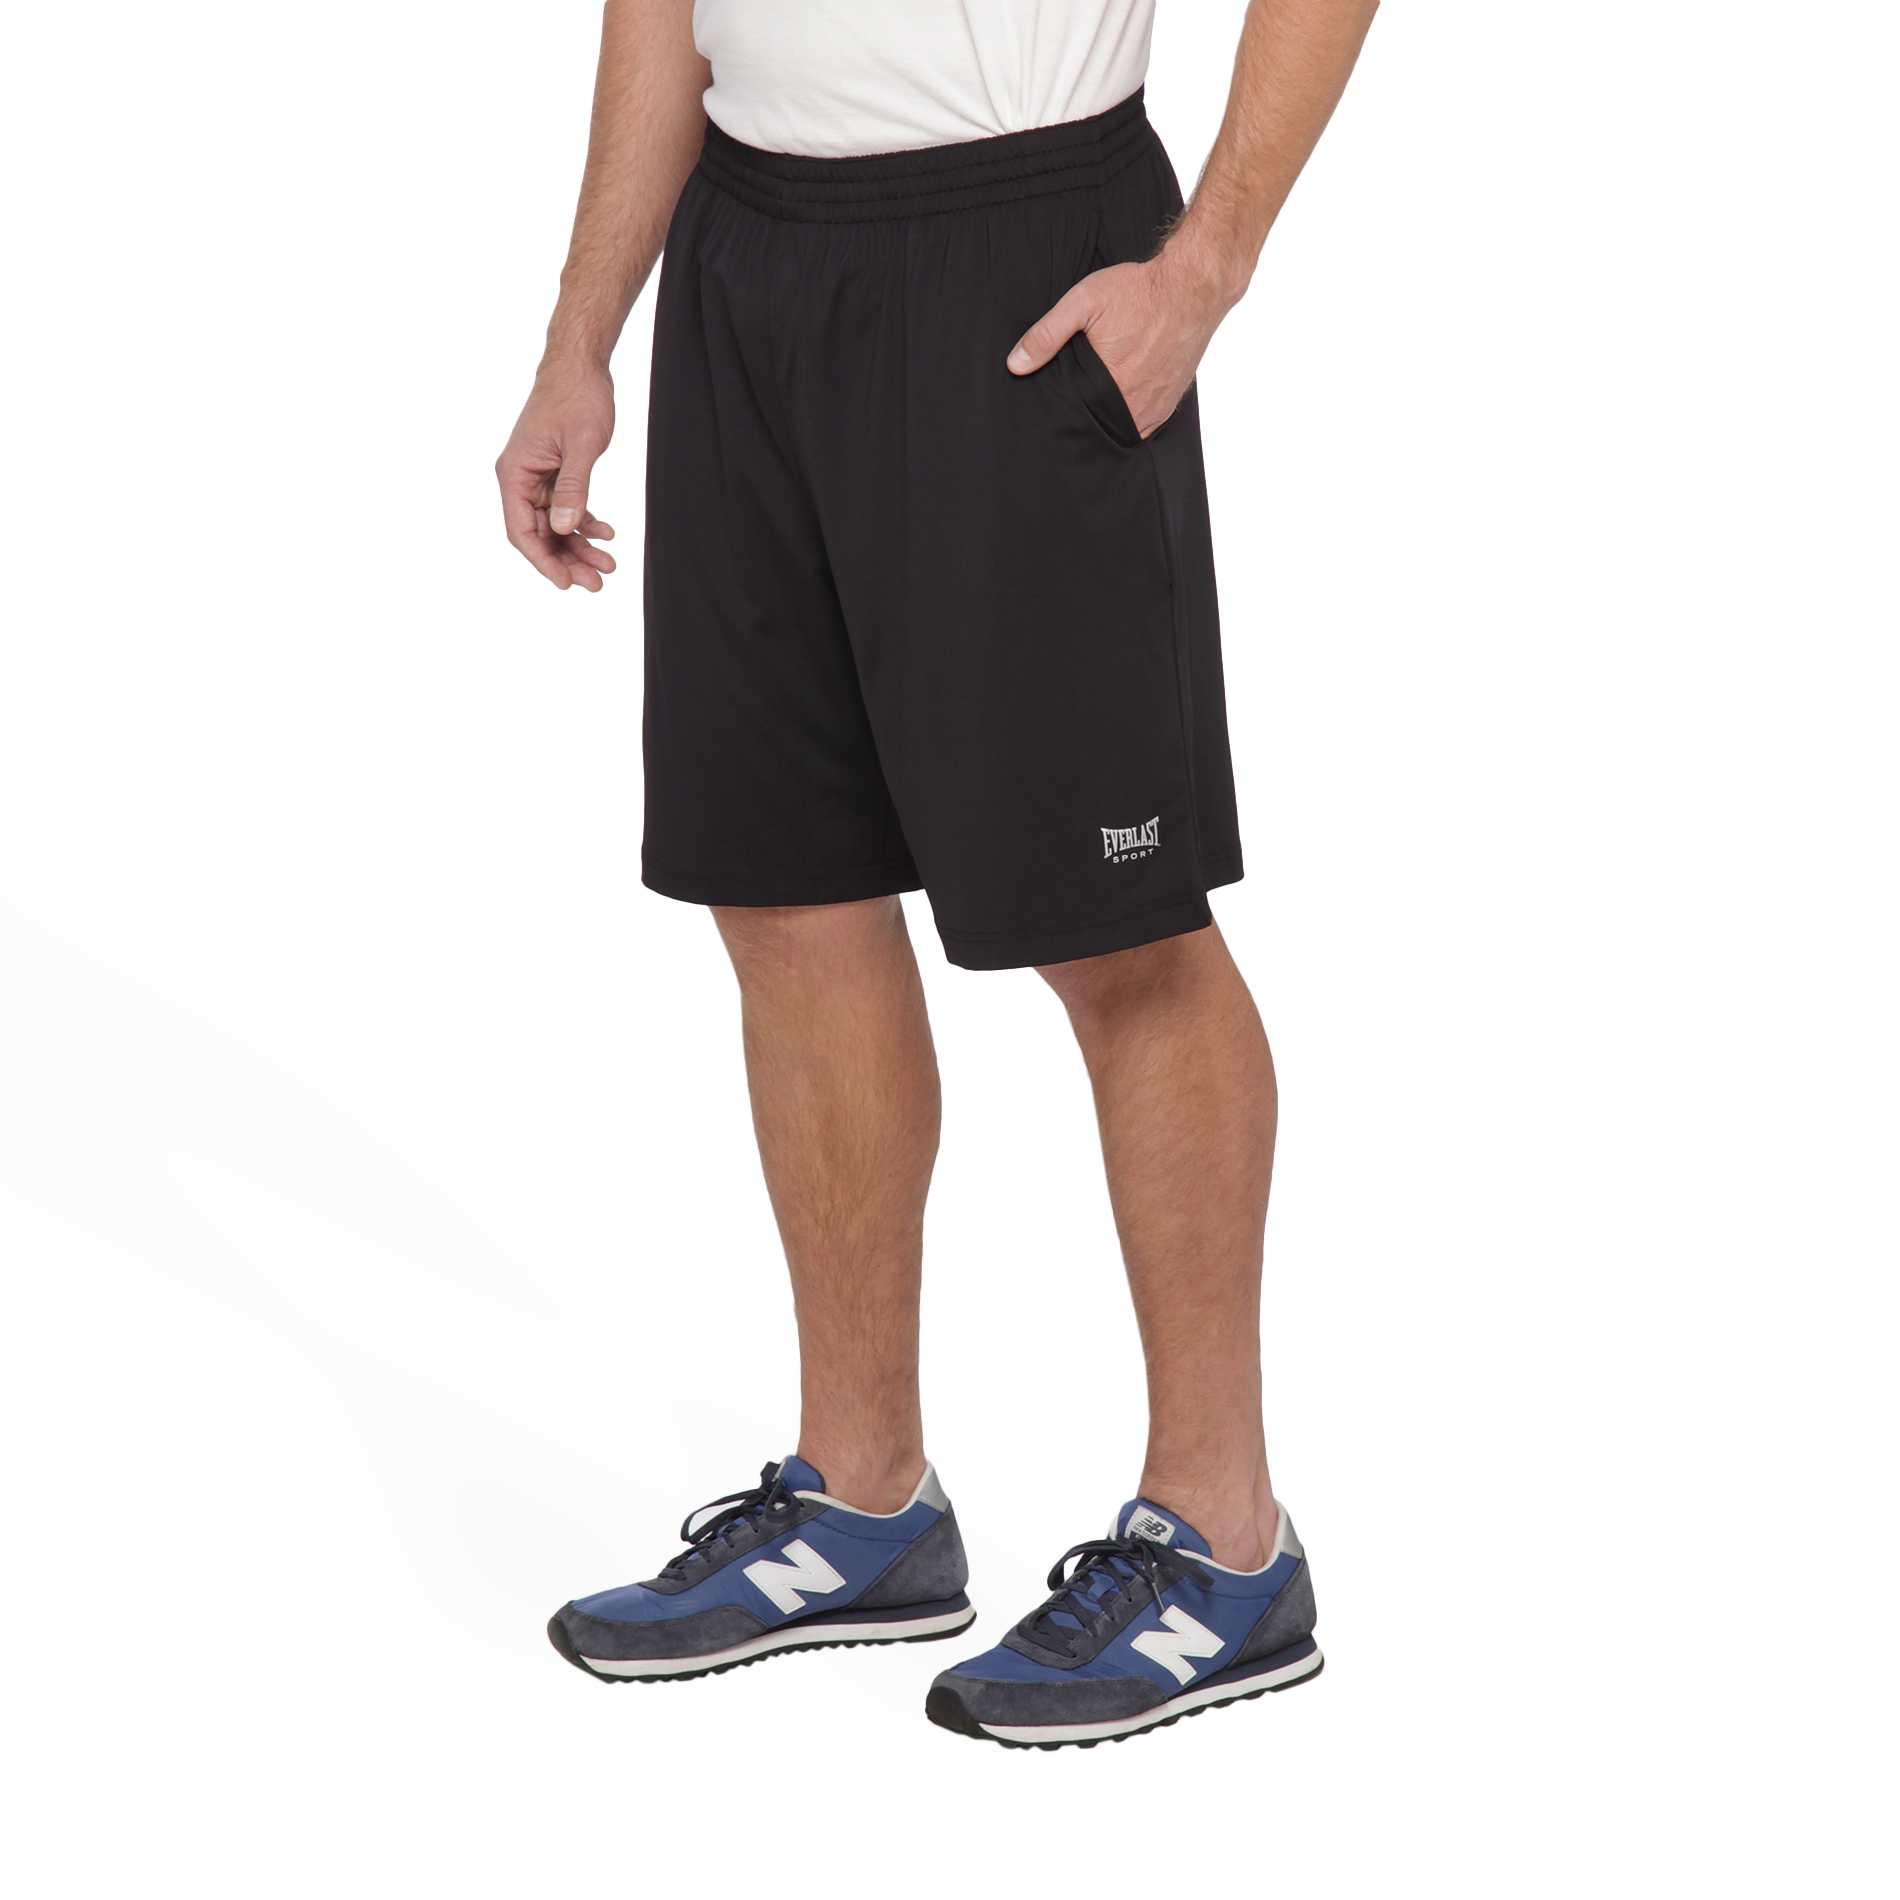 Everlast® Sport Men's Loose Compression Athletic Shorts at Kmart.com